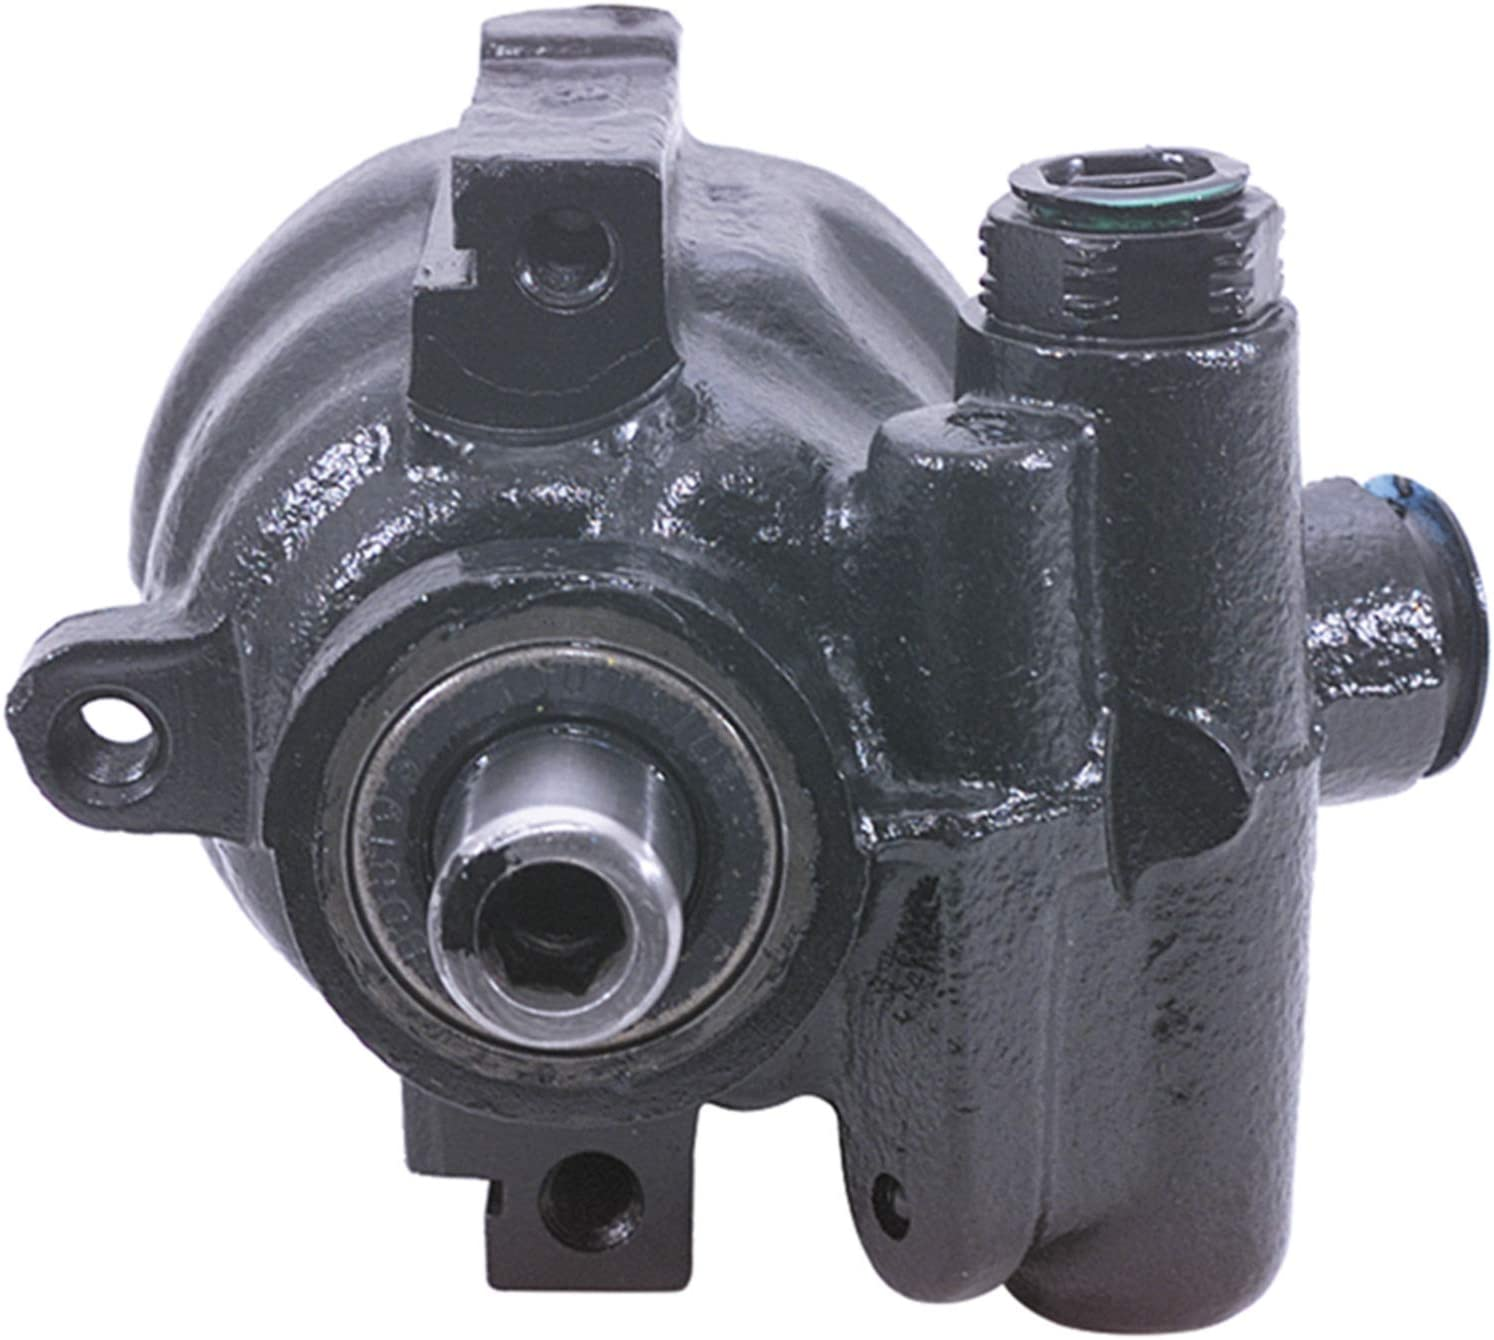 specialty shop Tampa Mall Cardone 20-900 Remanufactured Power Reserv without Steering Pump